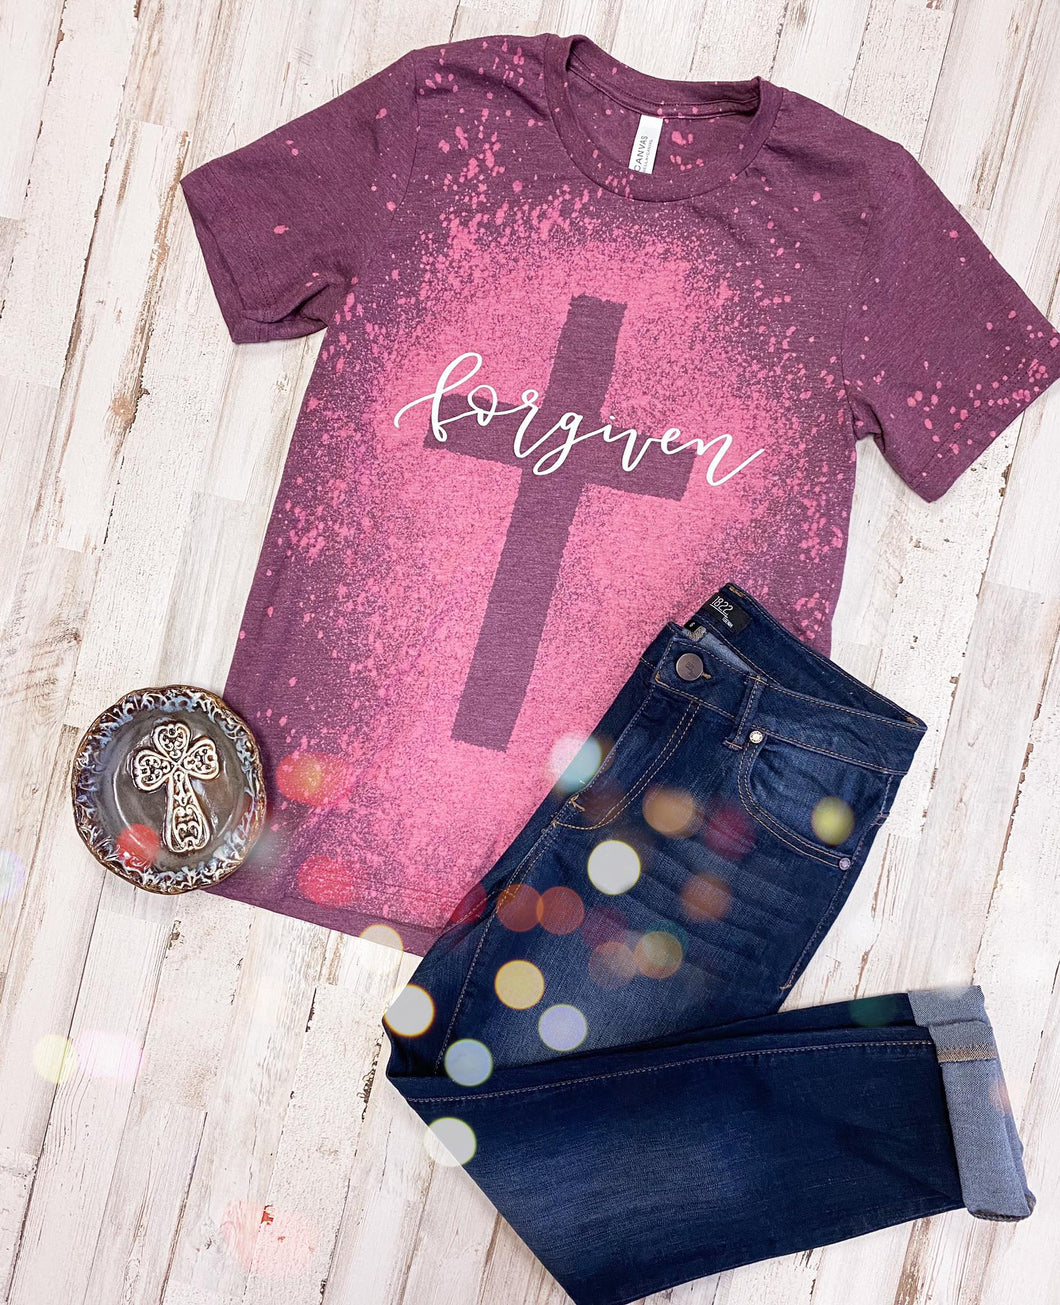 Forgiven Cross Distressed Tee (Heather Maroon) DROPSHIP